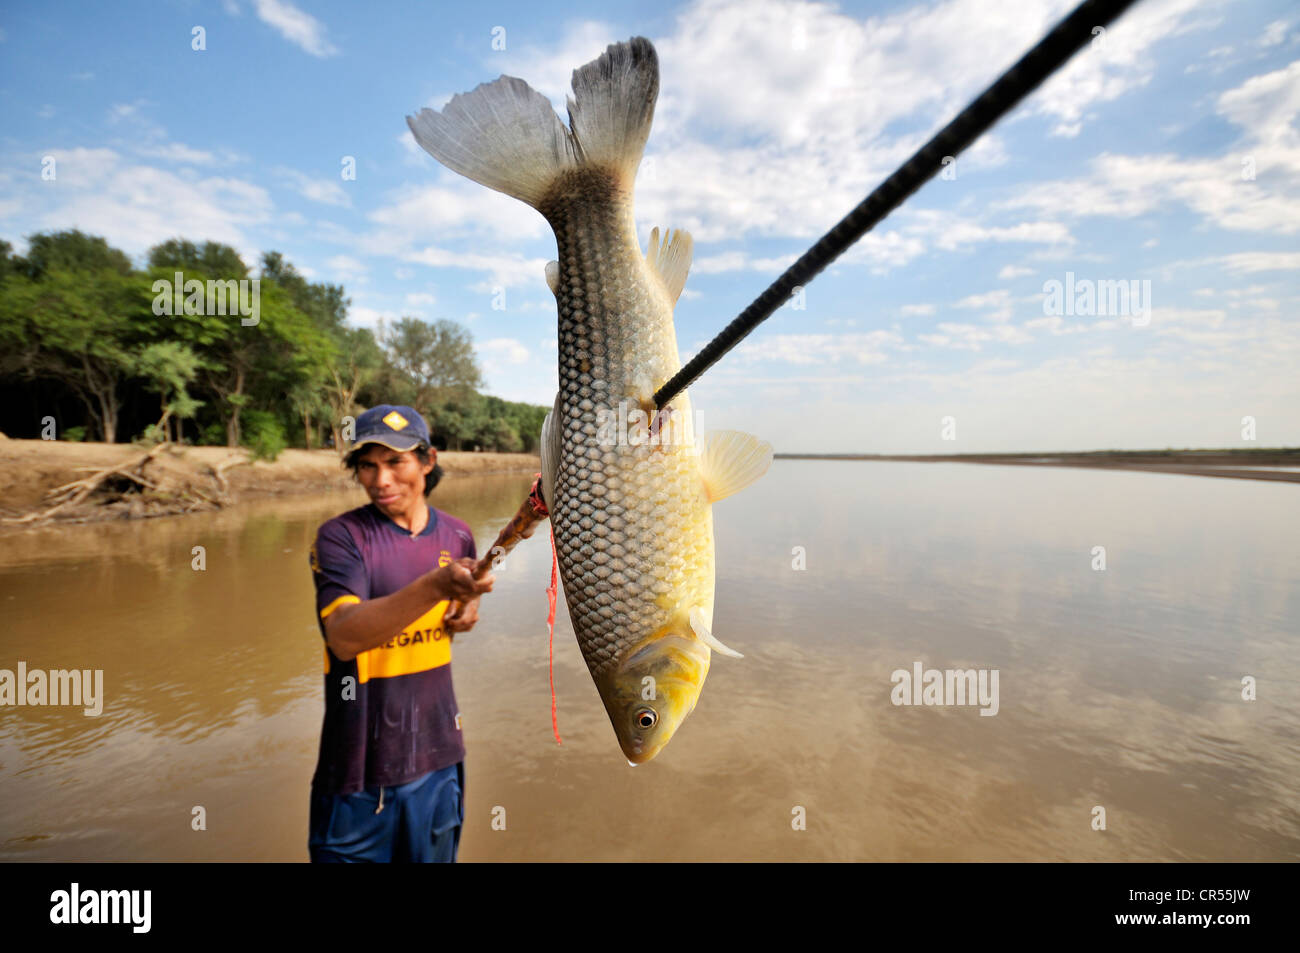 Young man from the indigenous Wichi Indians tribe fishing with a spear in the Pilcomayo river, La Curvita Indigena - Stock Image